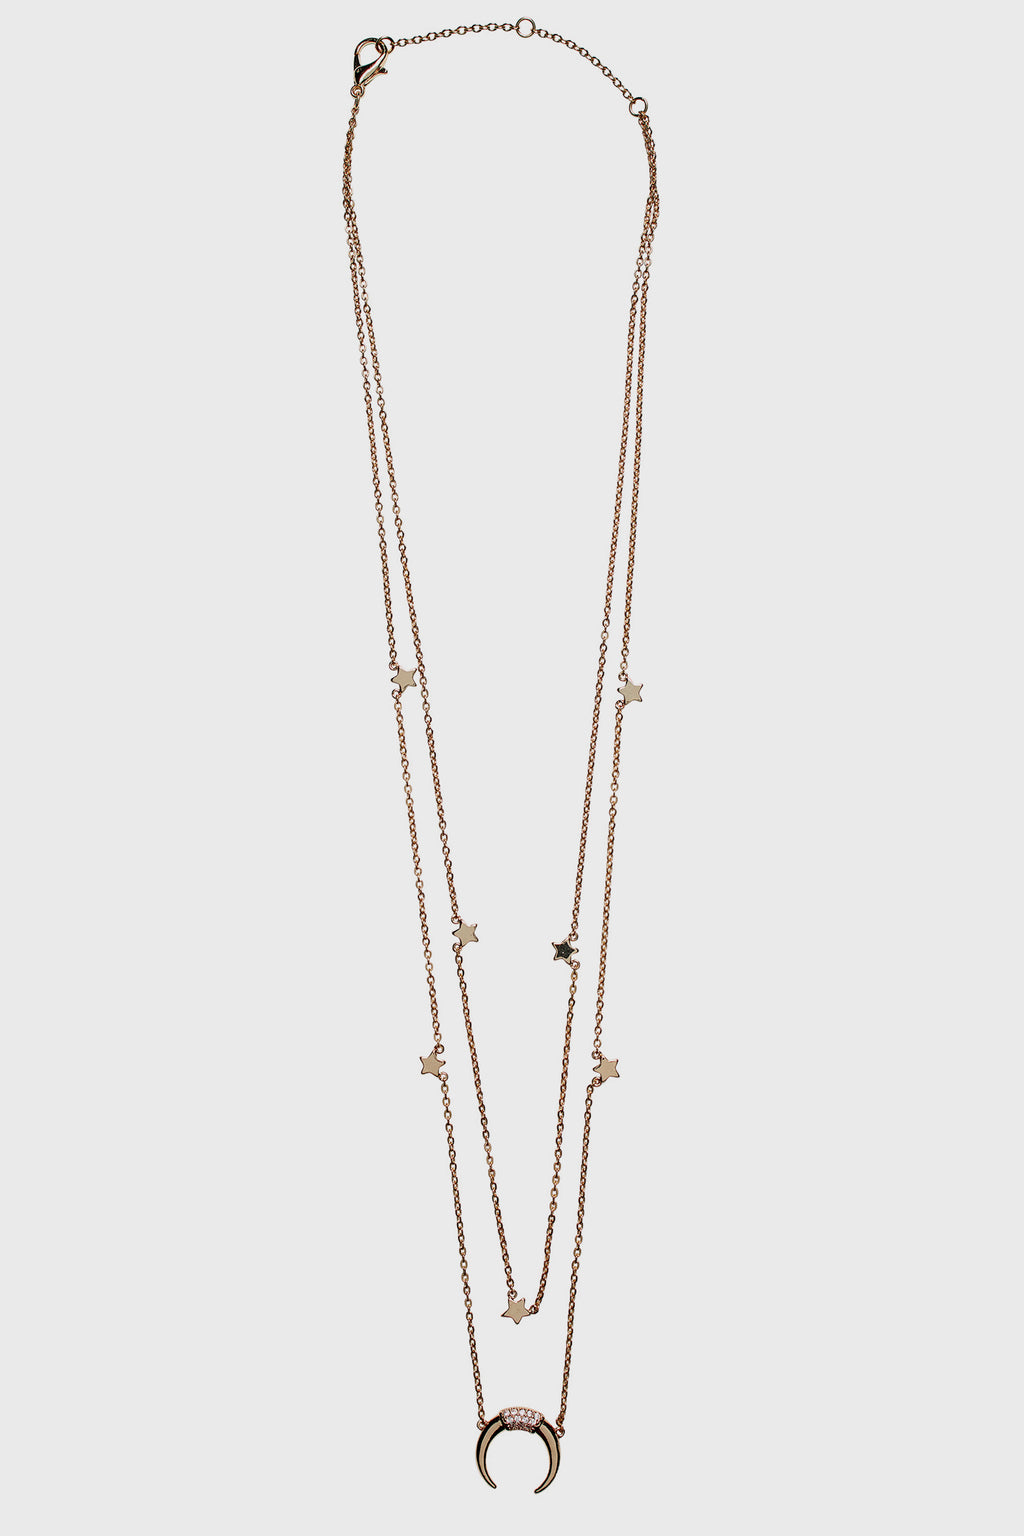 Double layer chain with stars and crescent moon (BSJ3538)-NECKLACE-BaySky